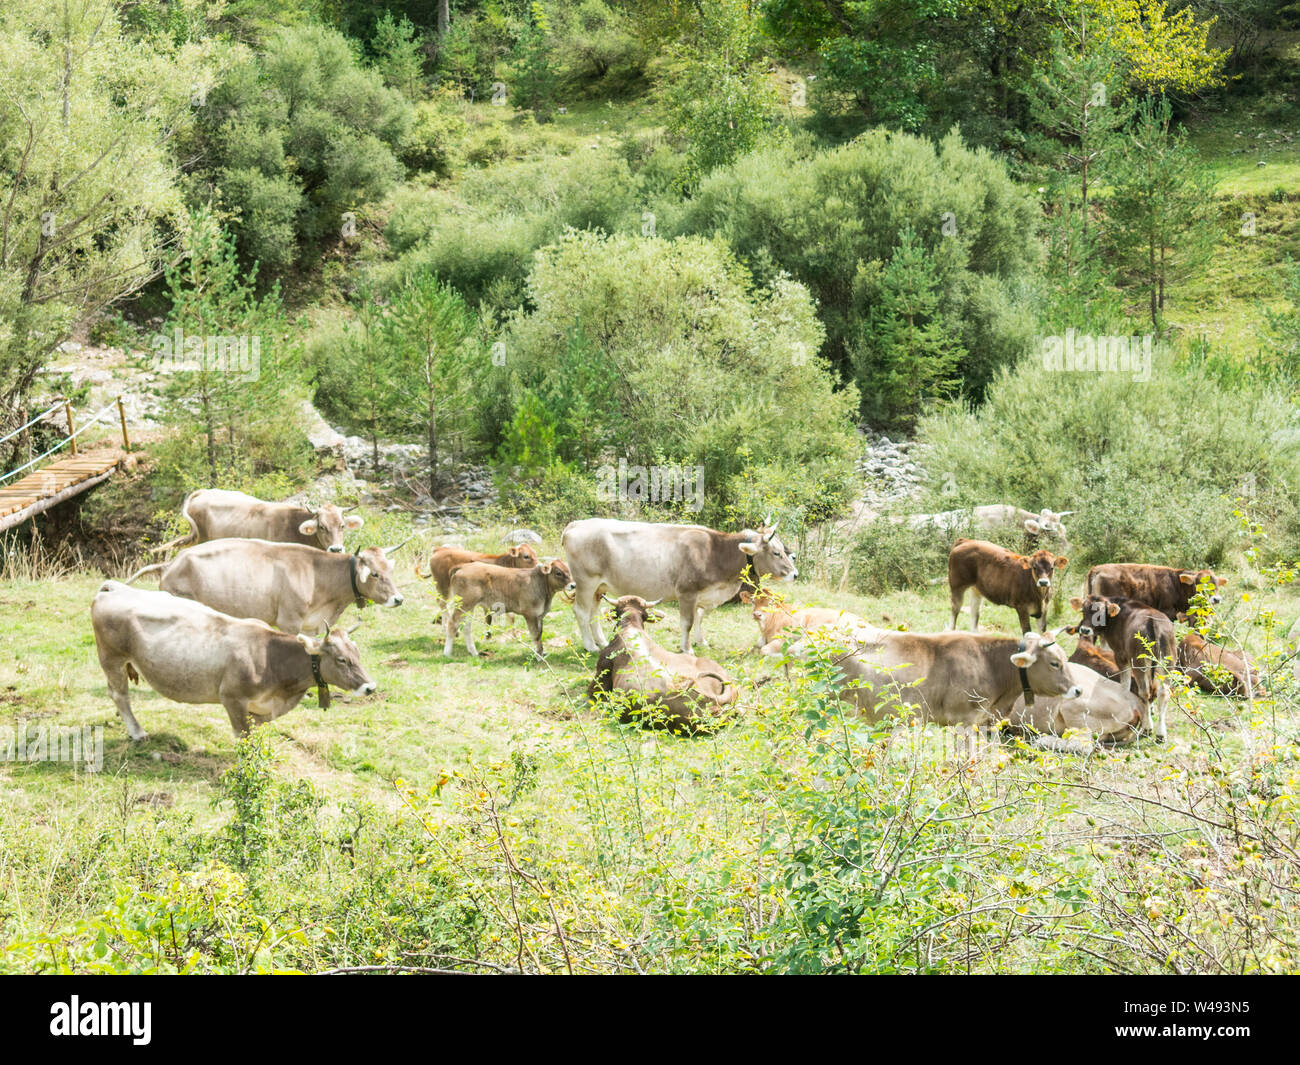 Cows grazing in a meadow in the Sierra del Cadí, pre-Pyrenees mountain in Catalonia, Provinde of Lleida, Spain. - Stock Photo